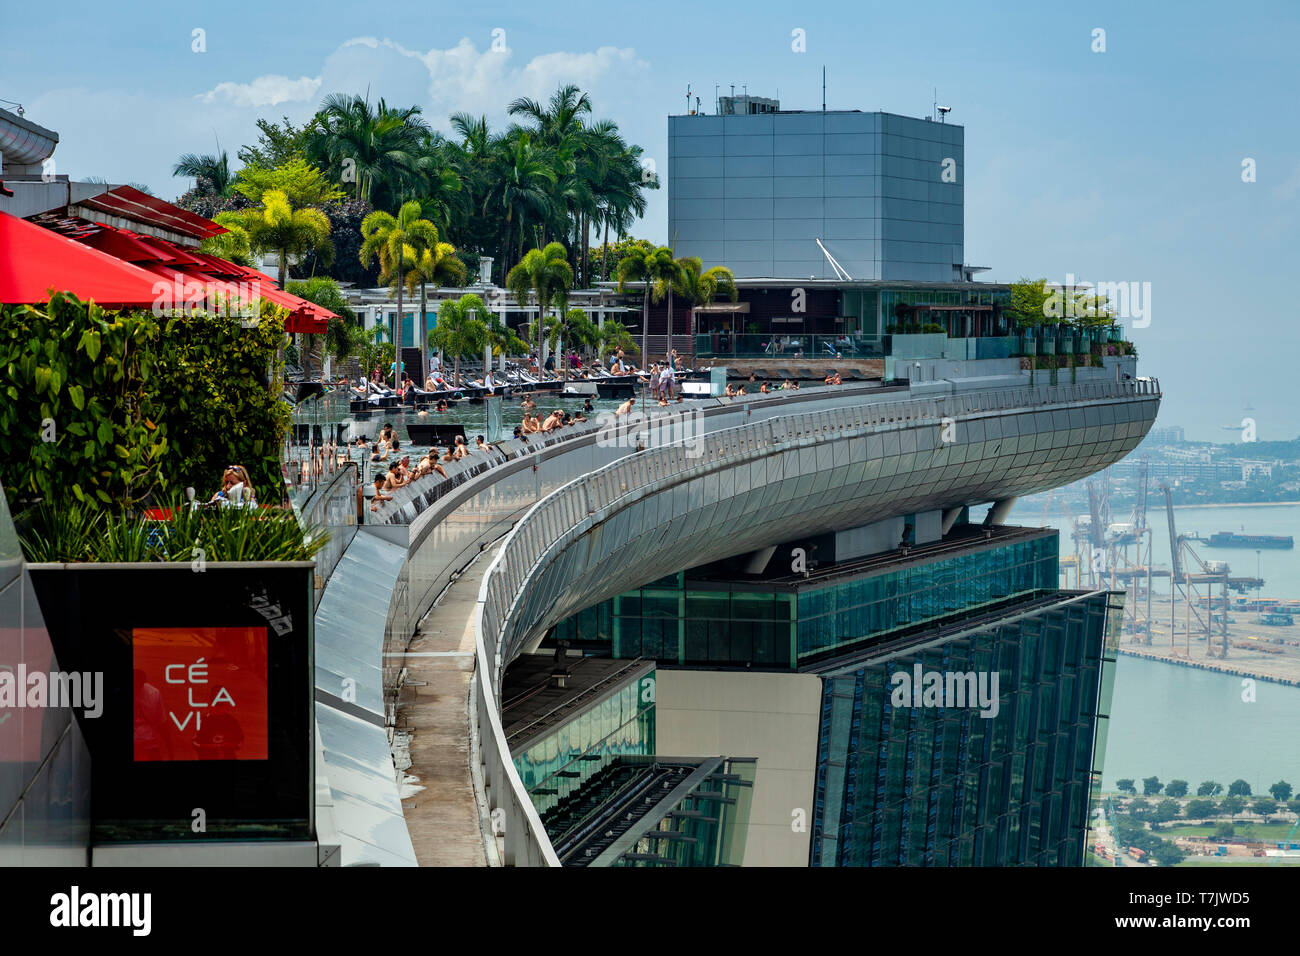 The Infinity Swimming Pool At The Marina Bay Sands Hotel, Singapore, South East Asia - Stock Image